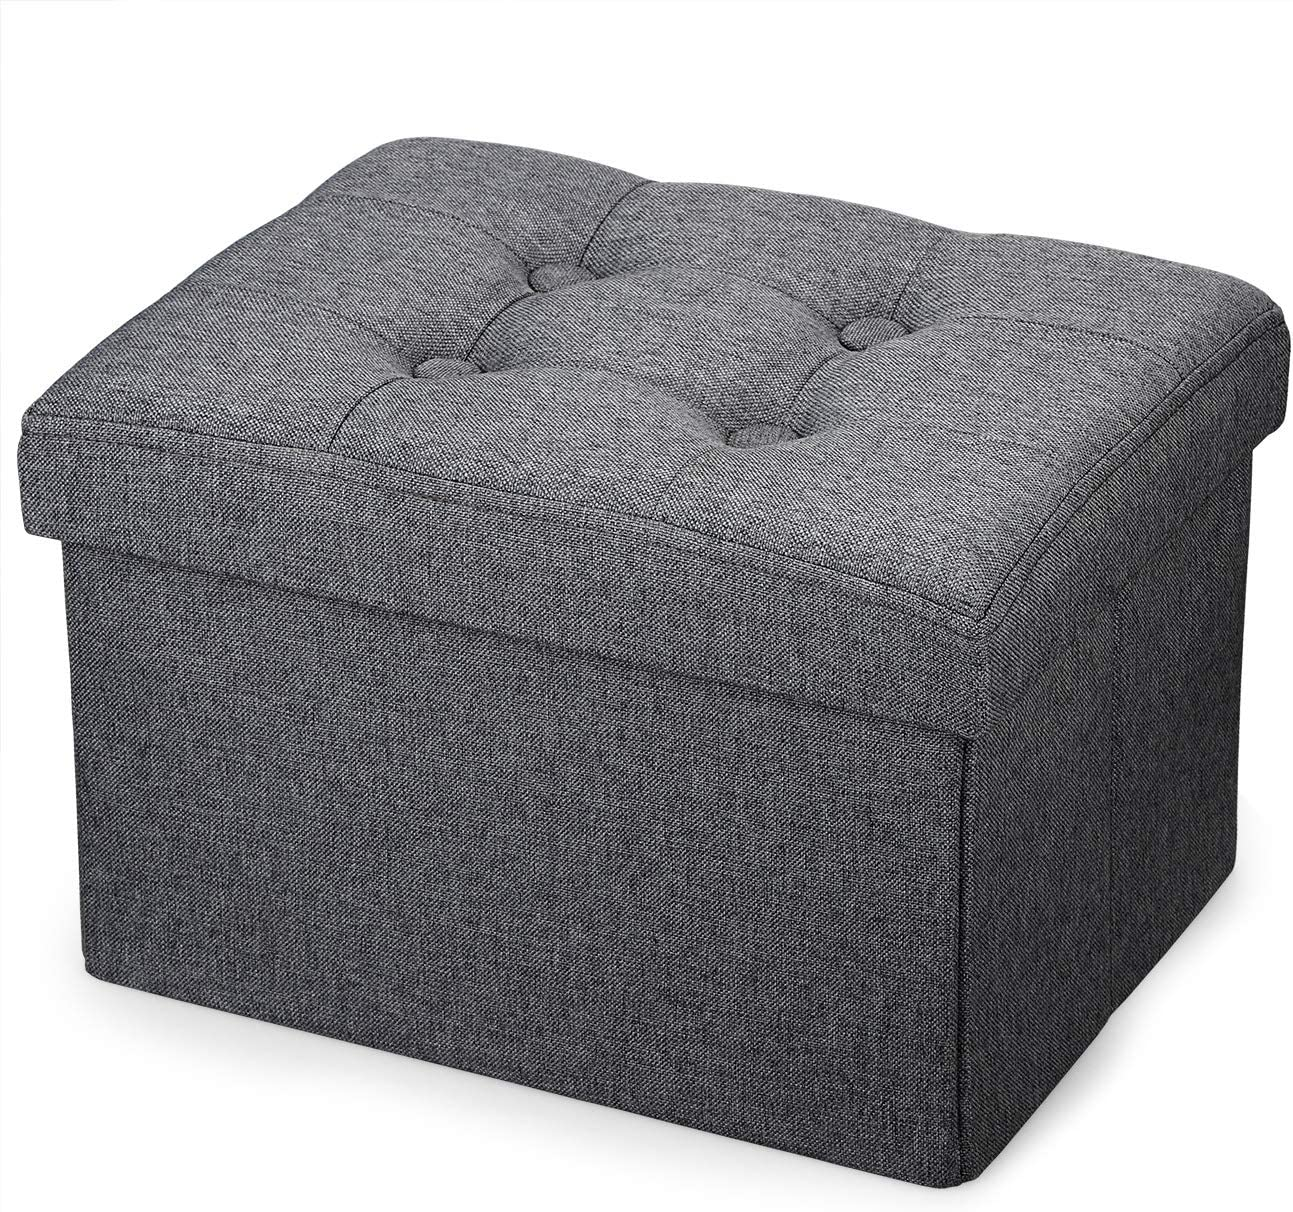 Vigamimn Small Ottoman Foot Rest Stool Short Foot Stools Foldable Ottoman Stool Linen Fabric Folding Storage Ottoman Thicker Foam Especially for Foot Rest